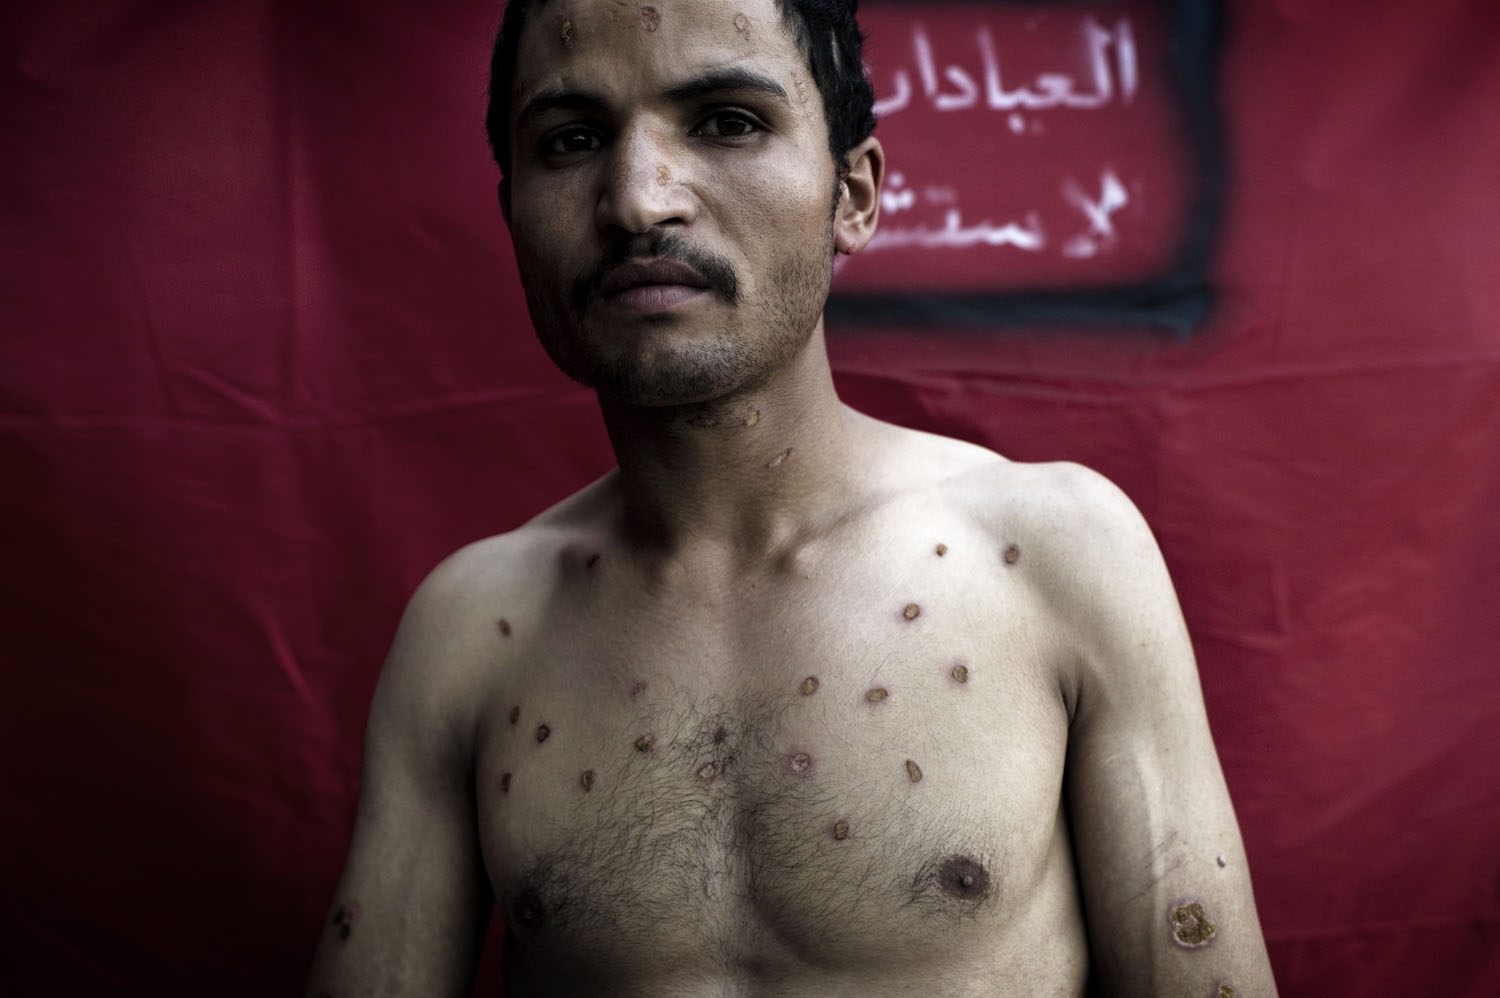 Nabel Ali Mohamed, 28, receives treatment at a makeshift field hospital in Sana'a. While protesting, Nabel was detained and tortured by security forces. They used his body as an ashtray, May 16, 2011.